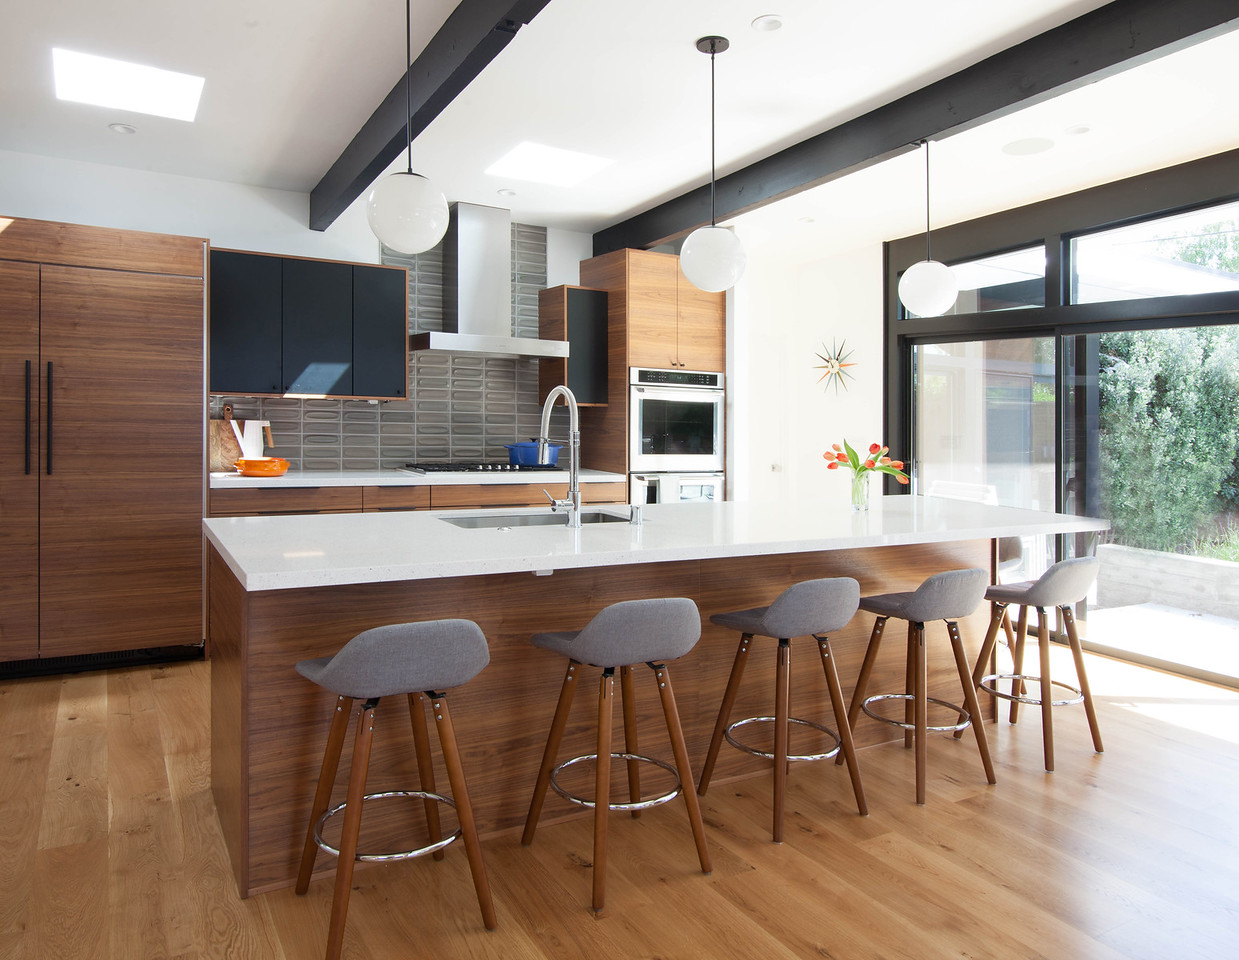 Silicon-valley-midcentury-modern-kitchen.jpg